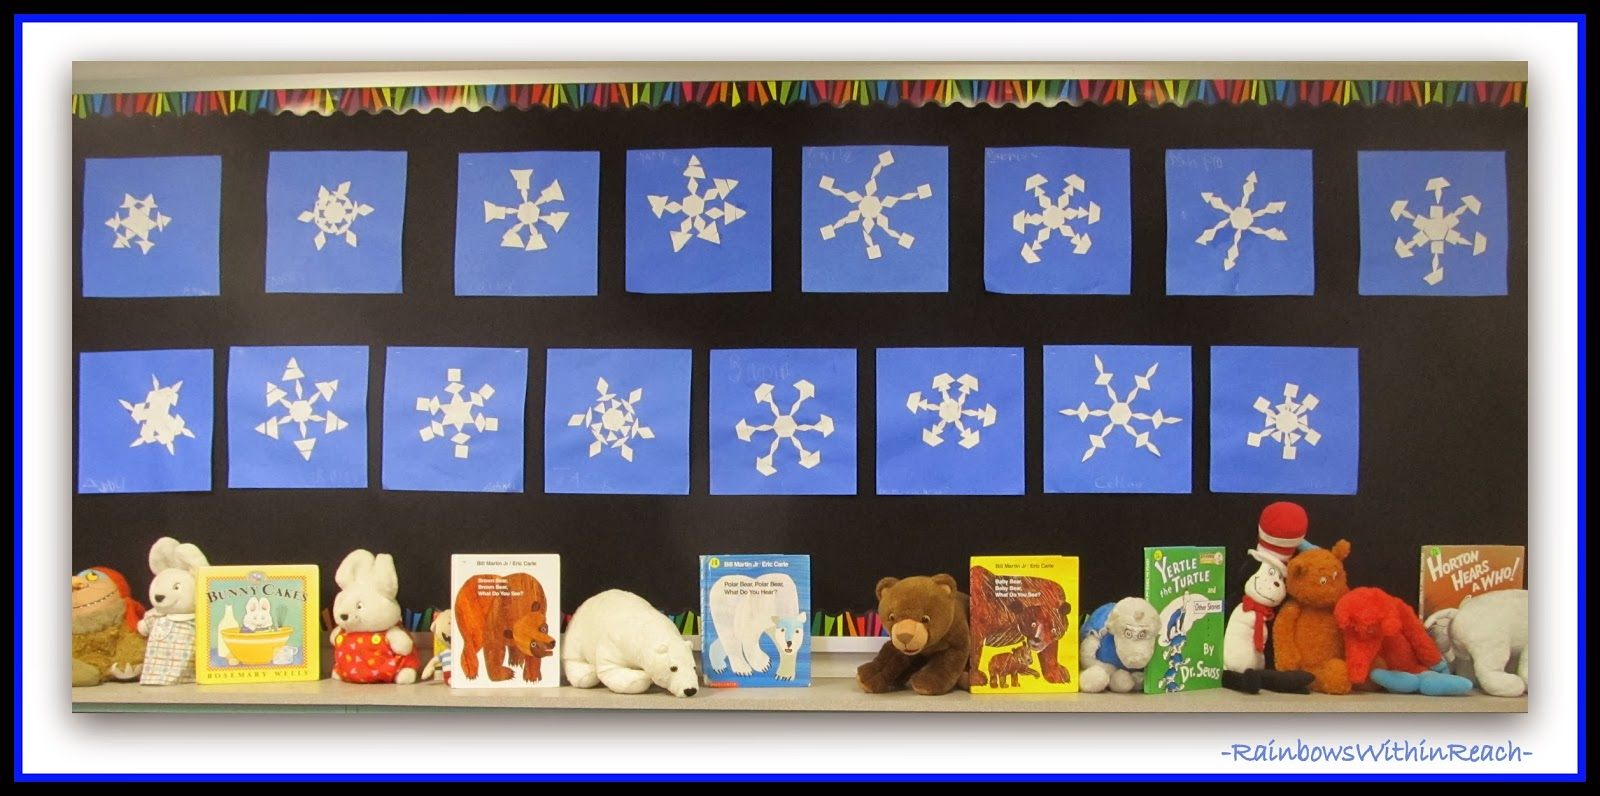 Winter Bulletin Board of Symmetric Snowflakes in Kindergarten via RainbowsWithinReach